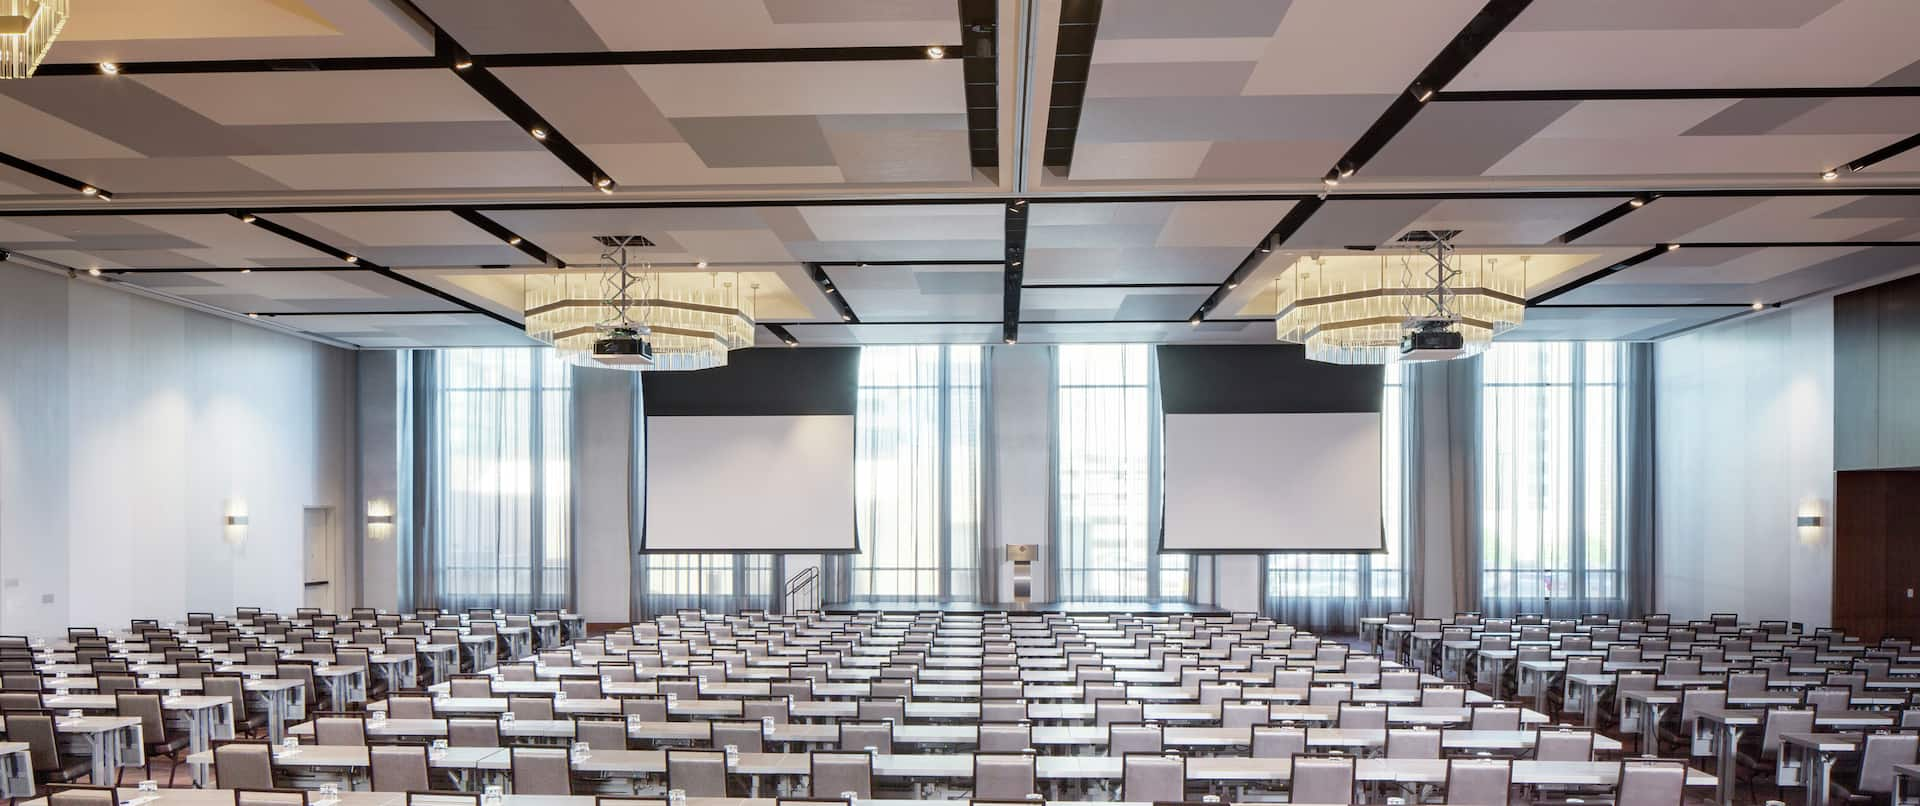 Ballroom Setup for a Conference